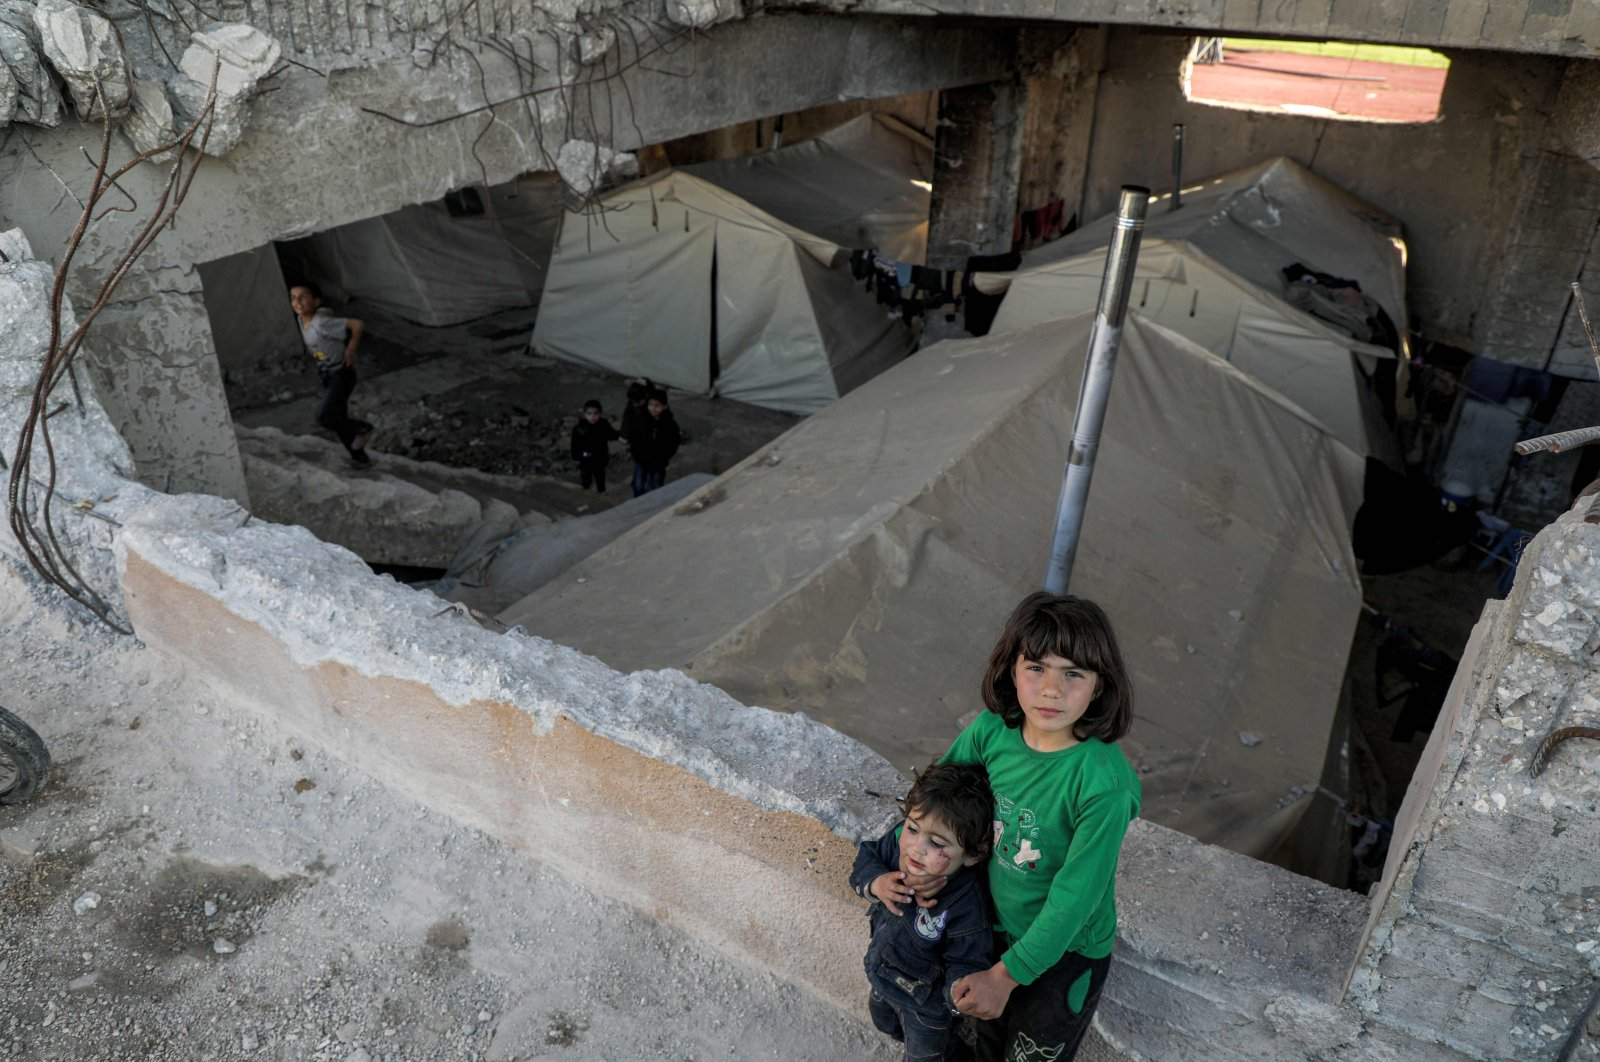 Syrian children displaced by the war stand in a makeshift camp at an Idlib football stadium on March 3, 2020, in the city of Idlib in northwestern Syria. (AFP Photo)